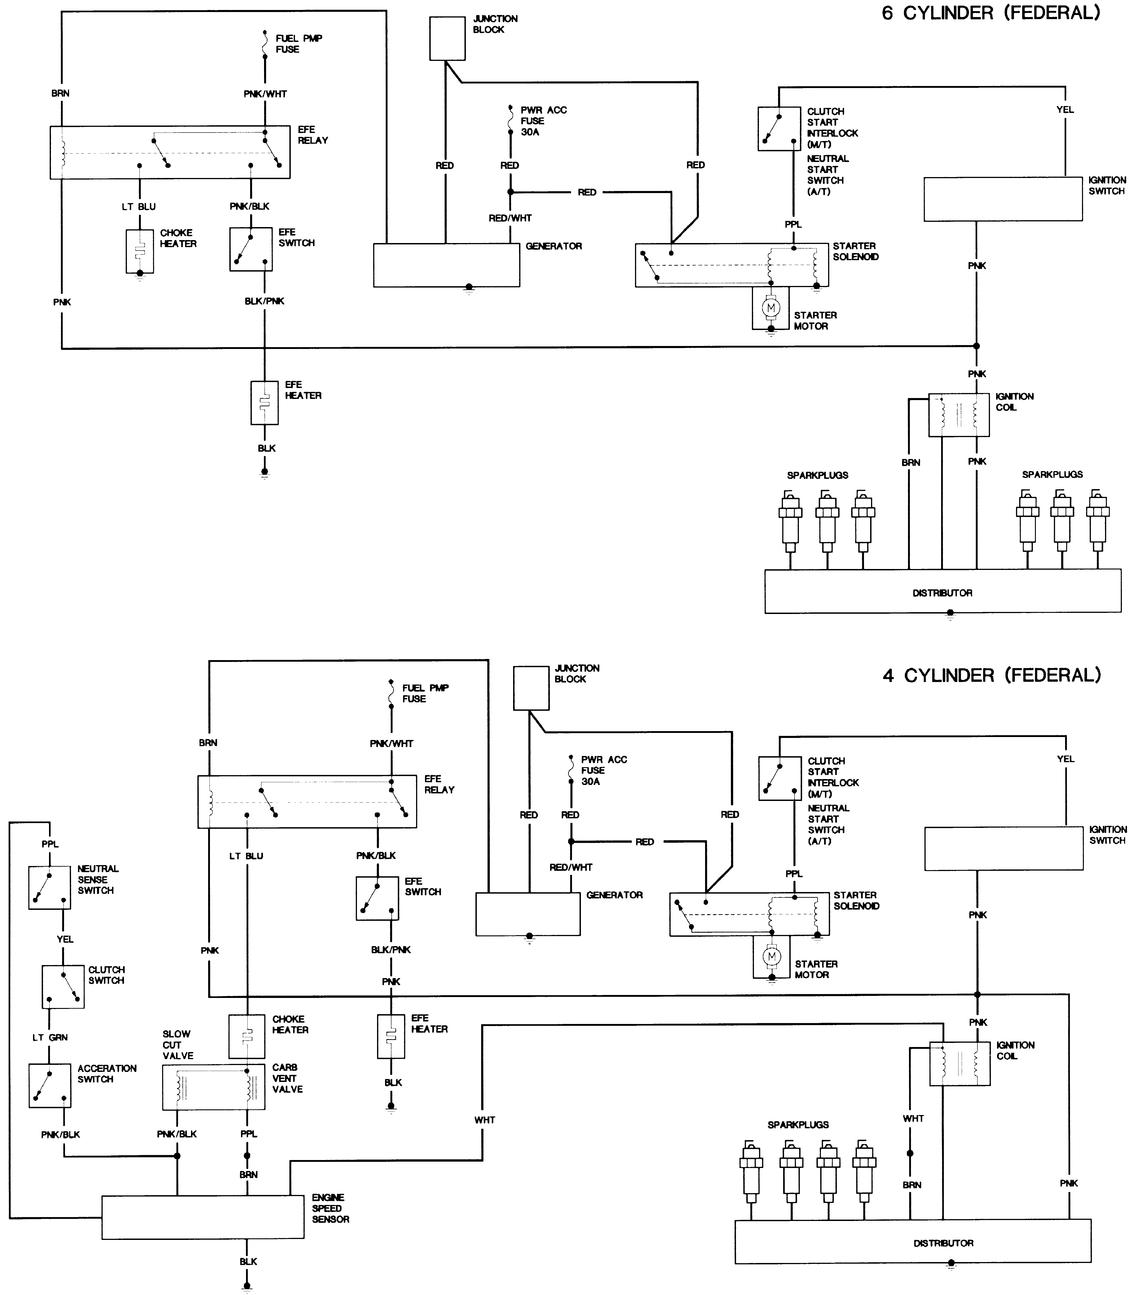 1982 chevy pickup wiring harness diagram can anyone find the actual choke circuitry for my 1982 s10 ... 1992 chevy pickup wiring harness